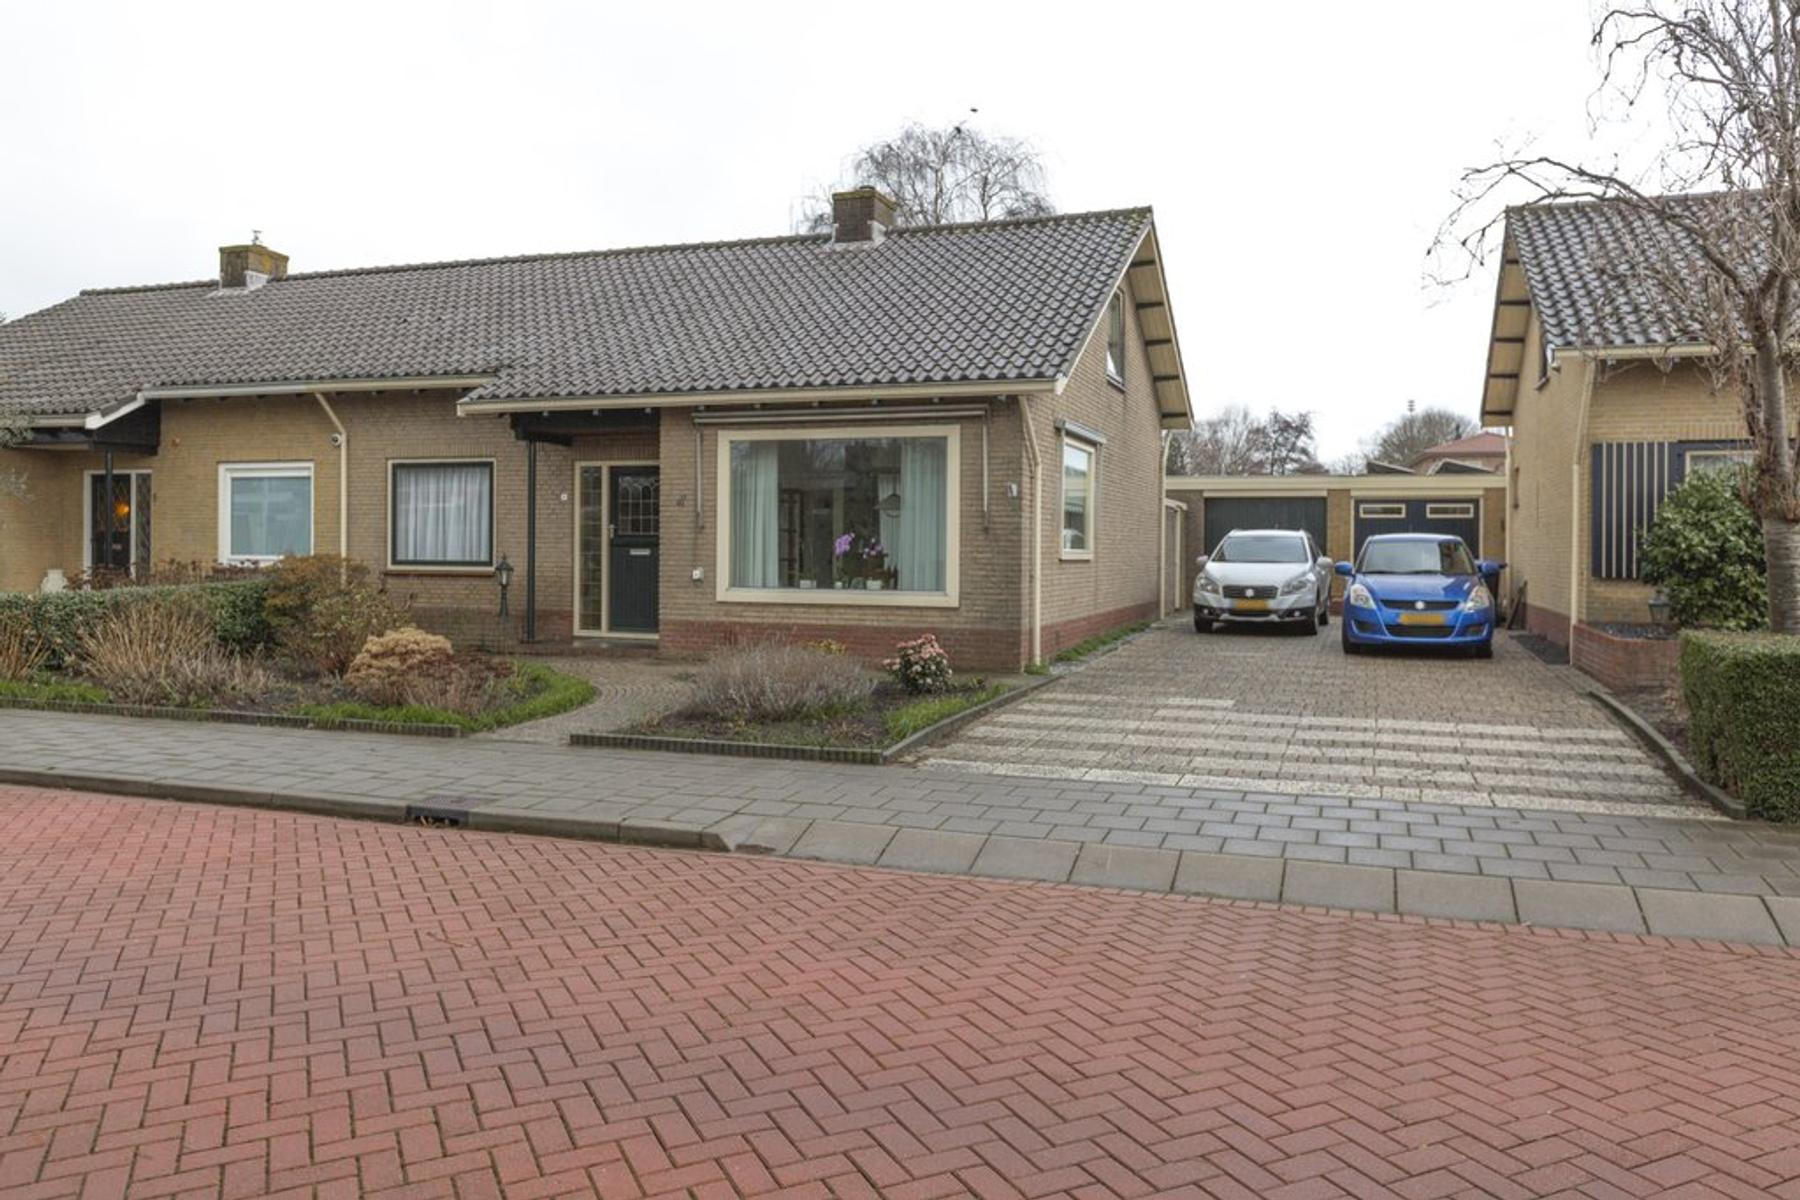 Conradpark 4 in Nieuwveen 2441 AG